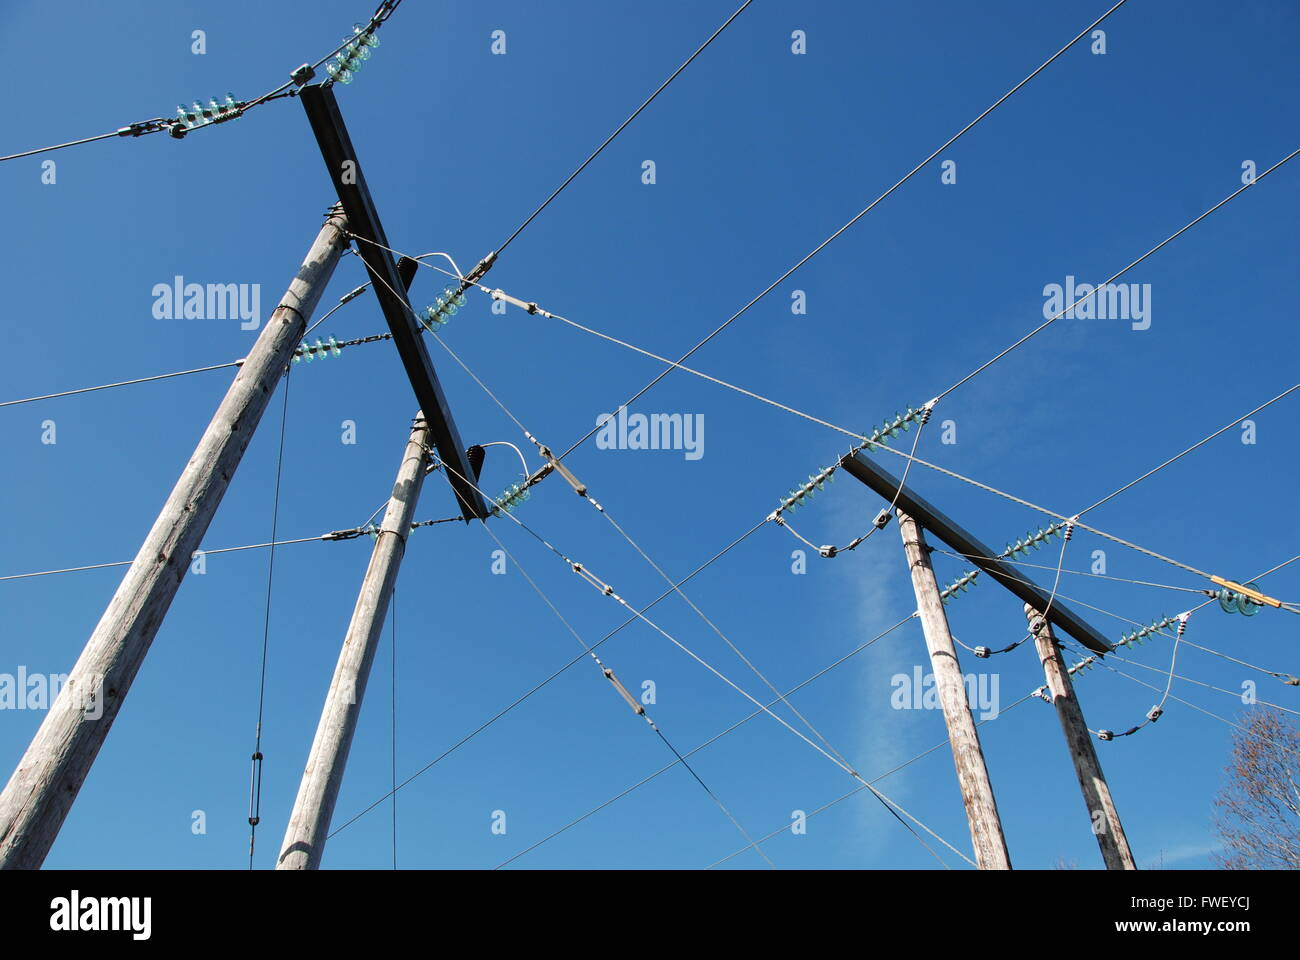 Connecting wires - Stock Image